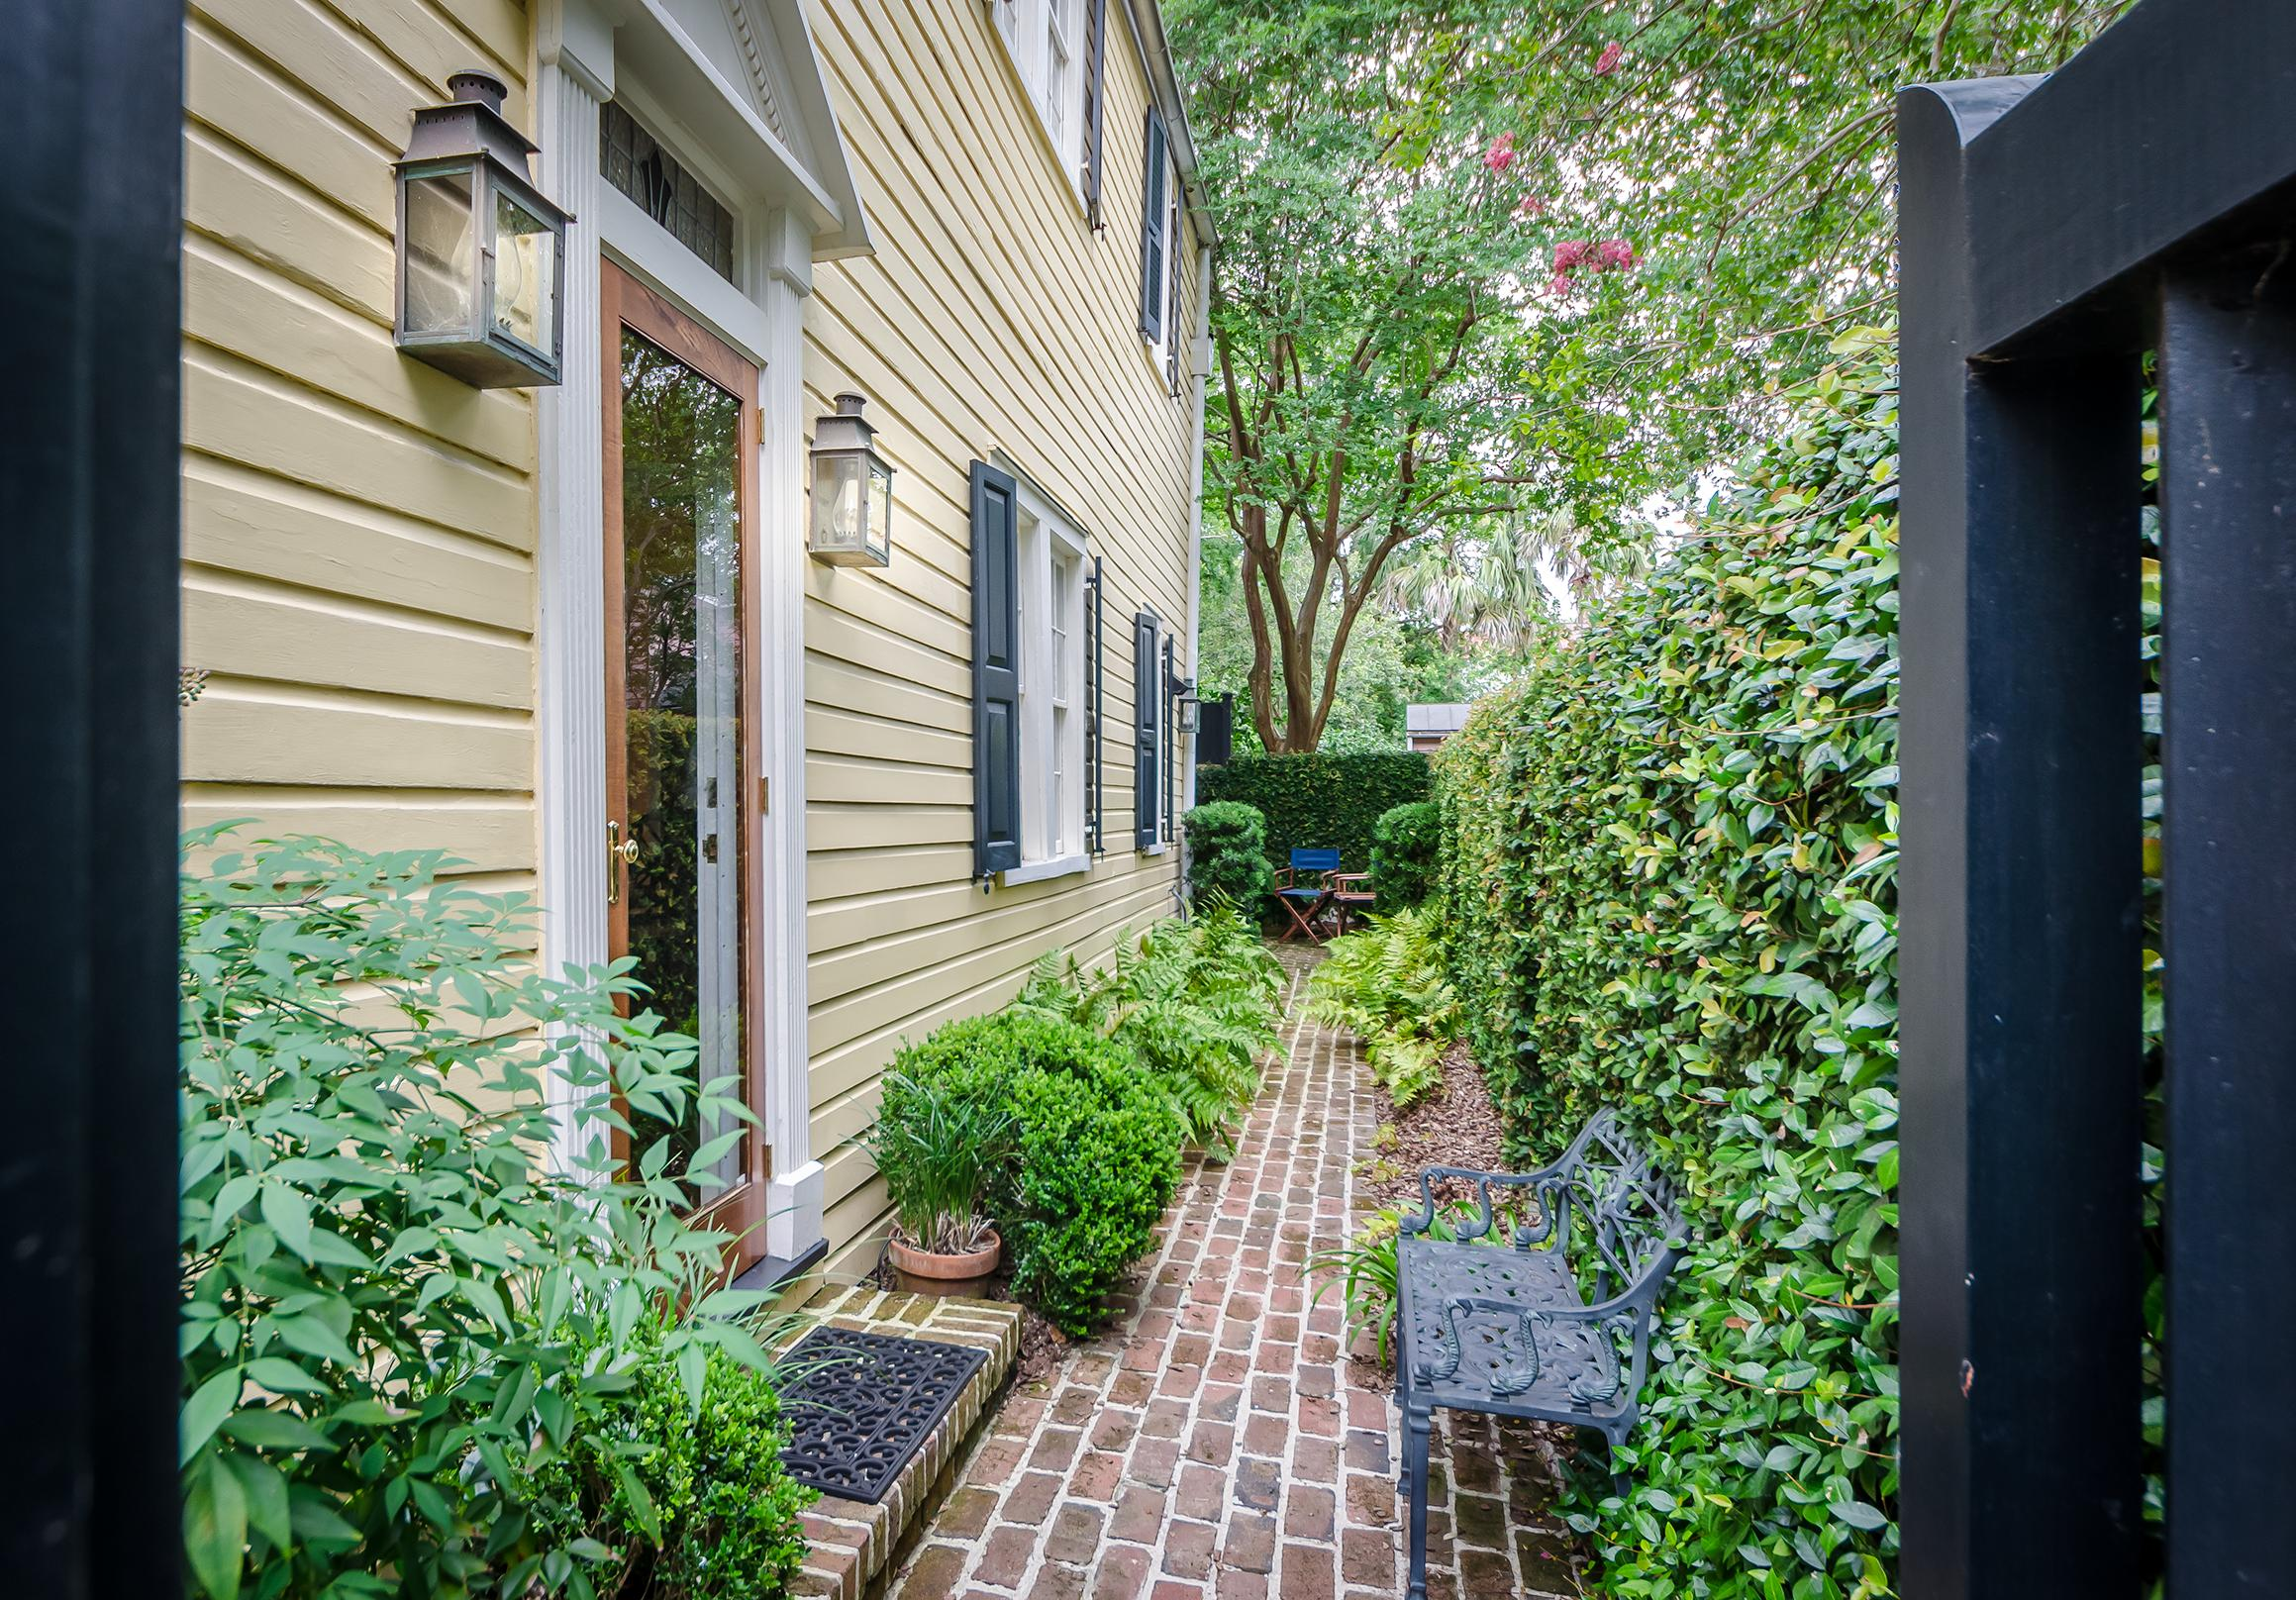 Home for sale 59 Legare Street, South Of Broad, Downtown Charleston, SC